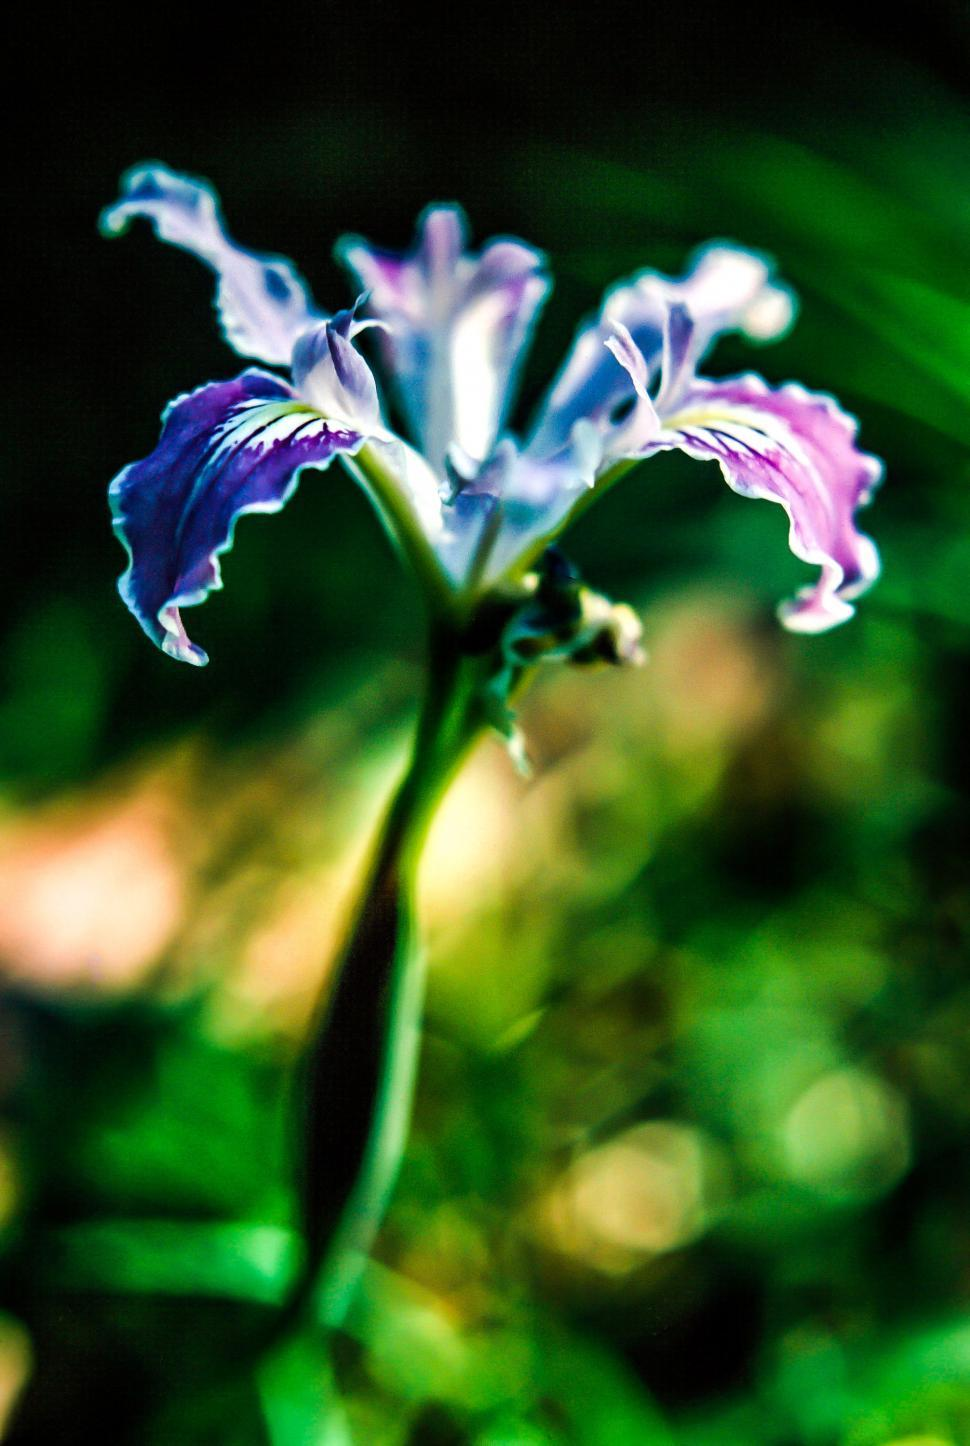 Download Free Stock Photo of Selective Focus on blue flower